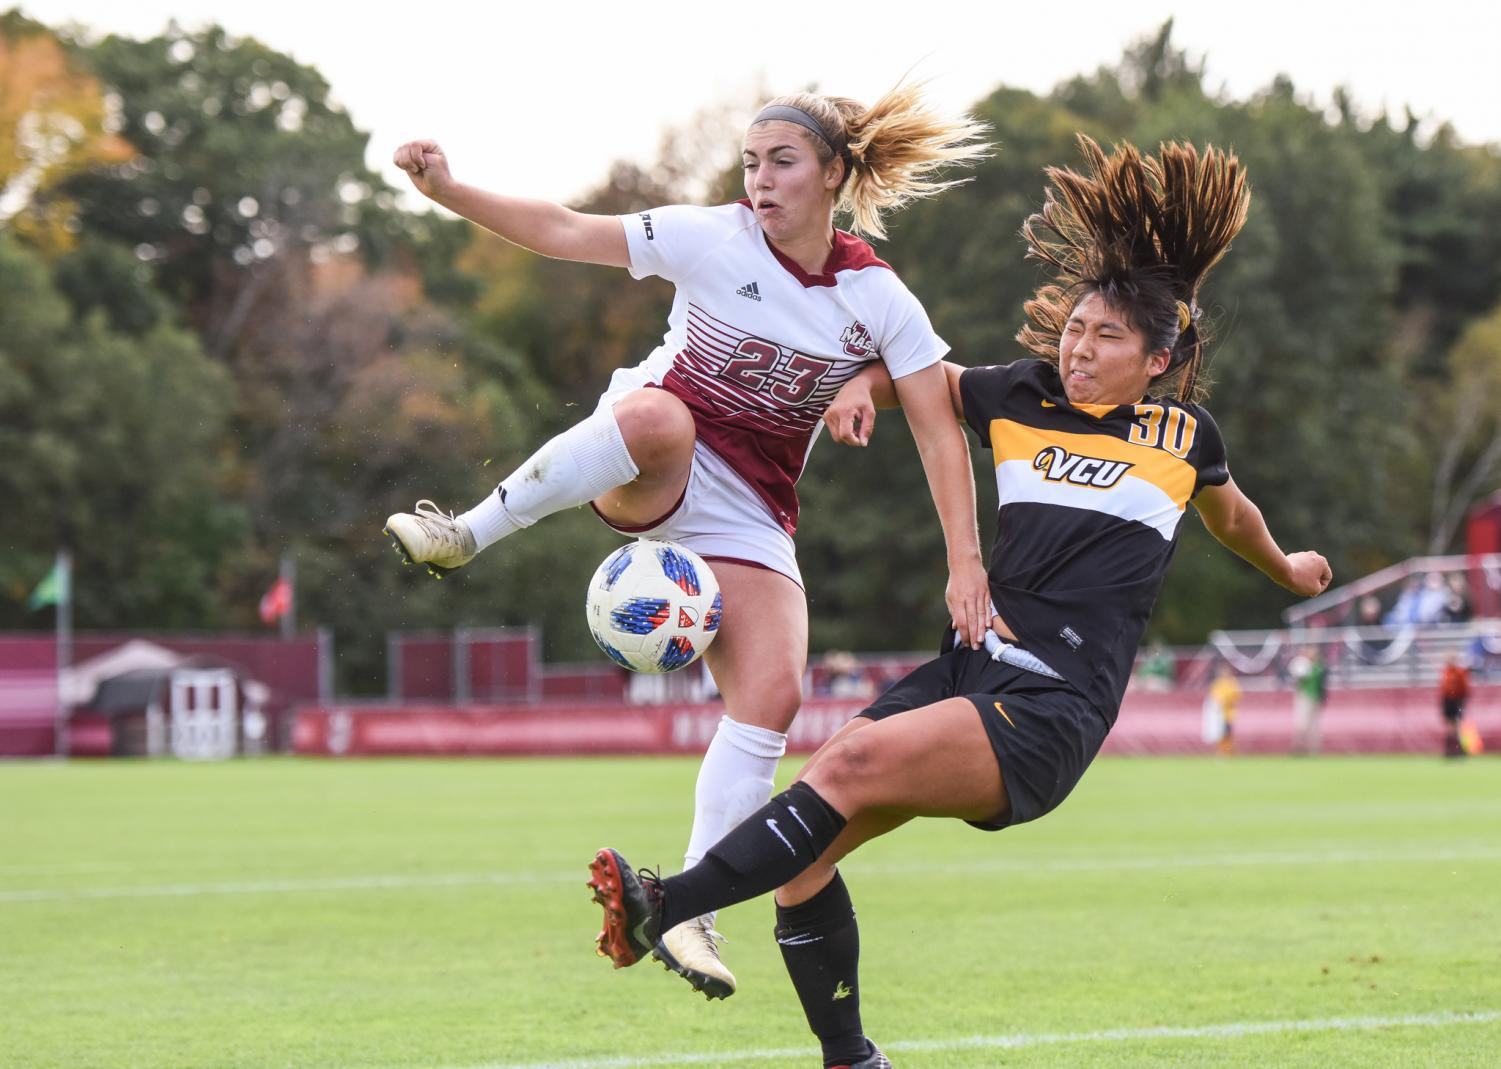 (Caroline O'Connor/Daily Collegian)